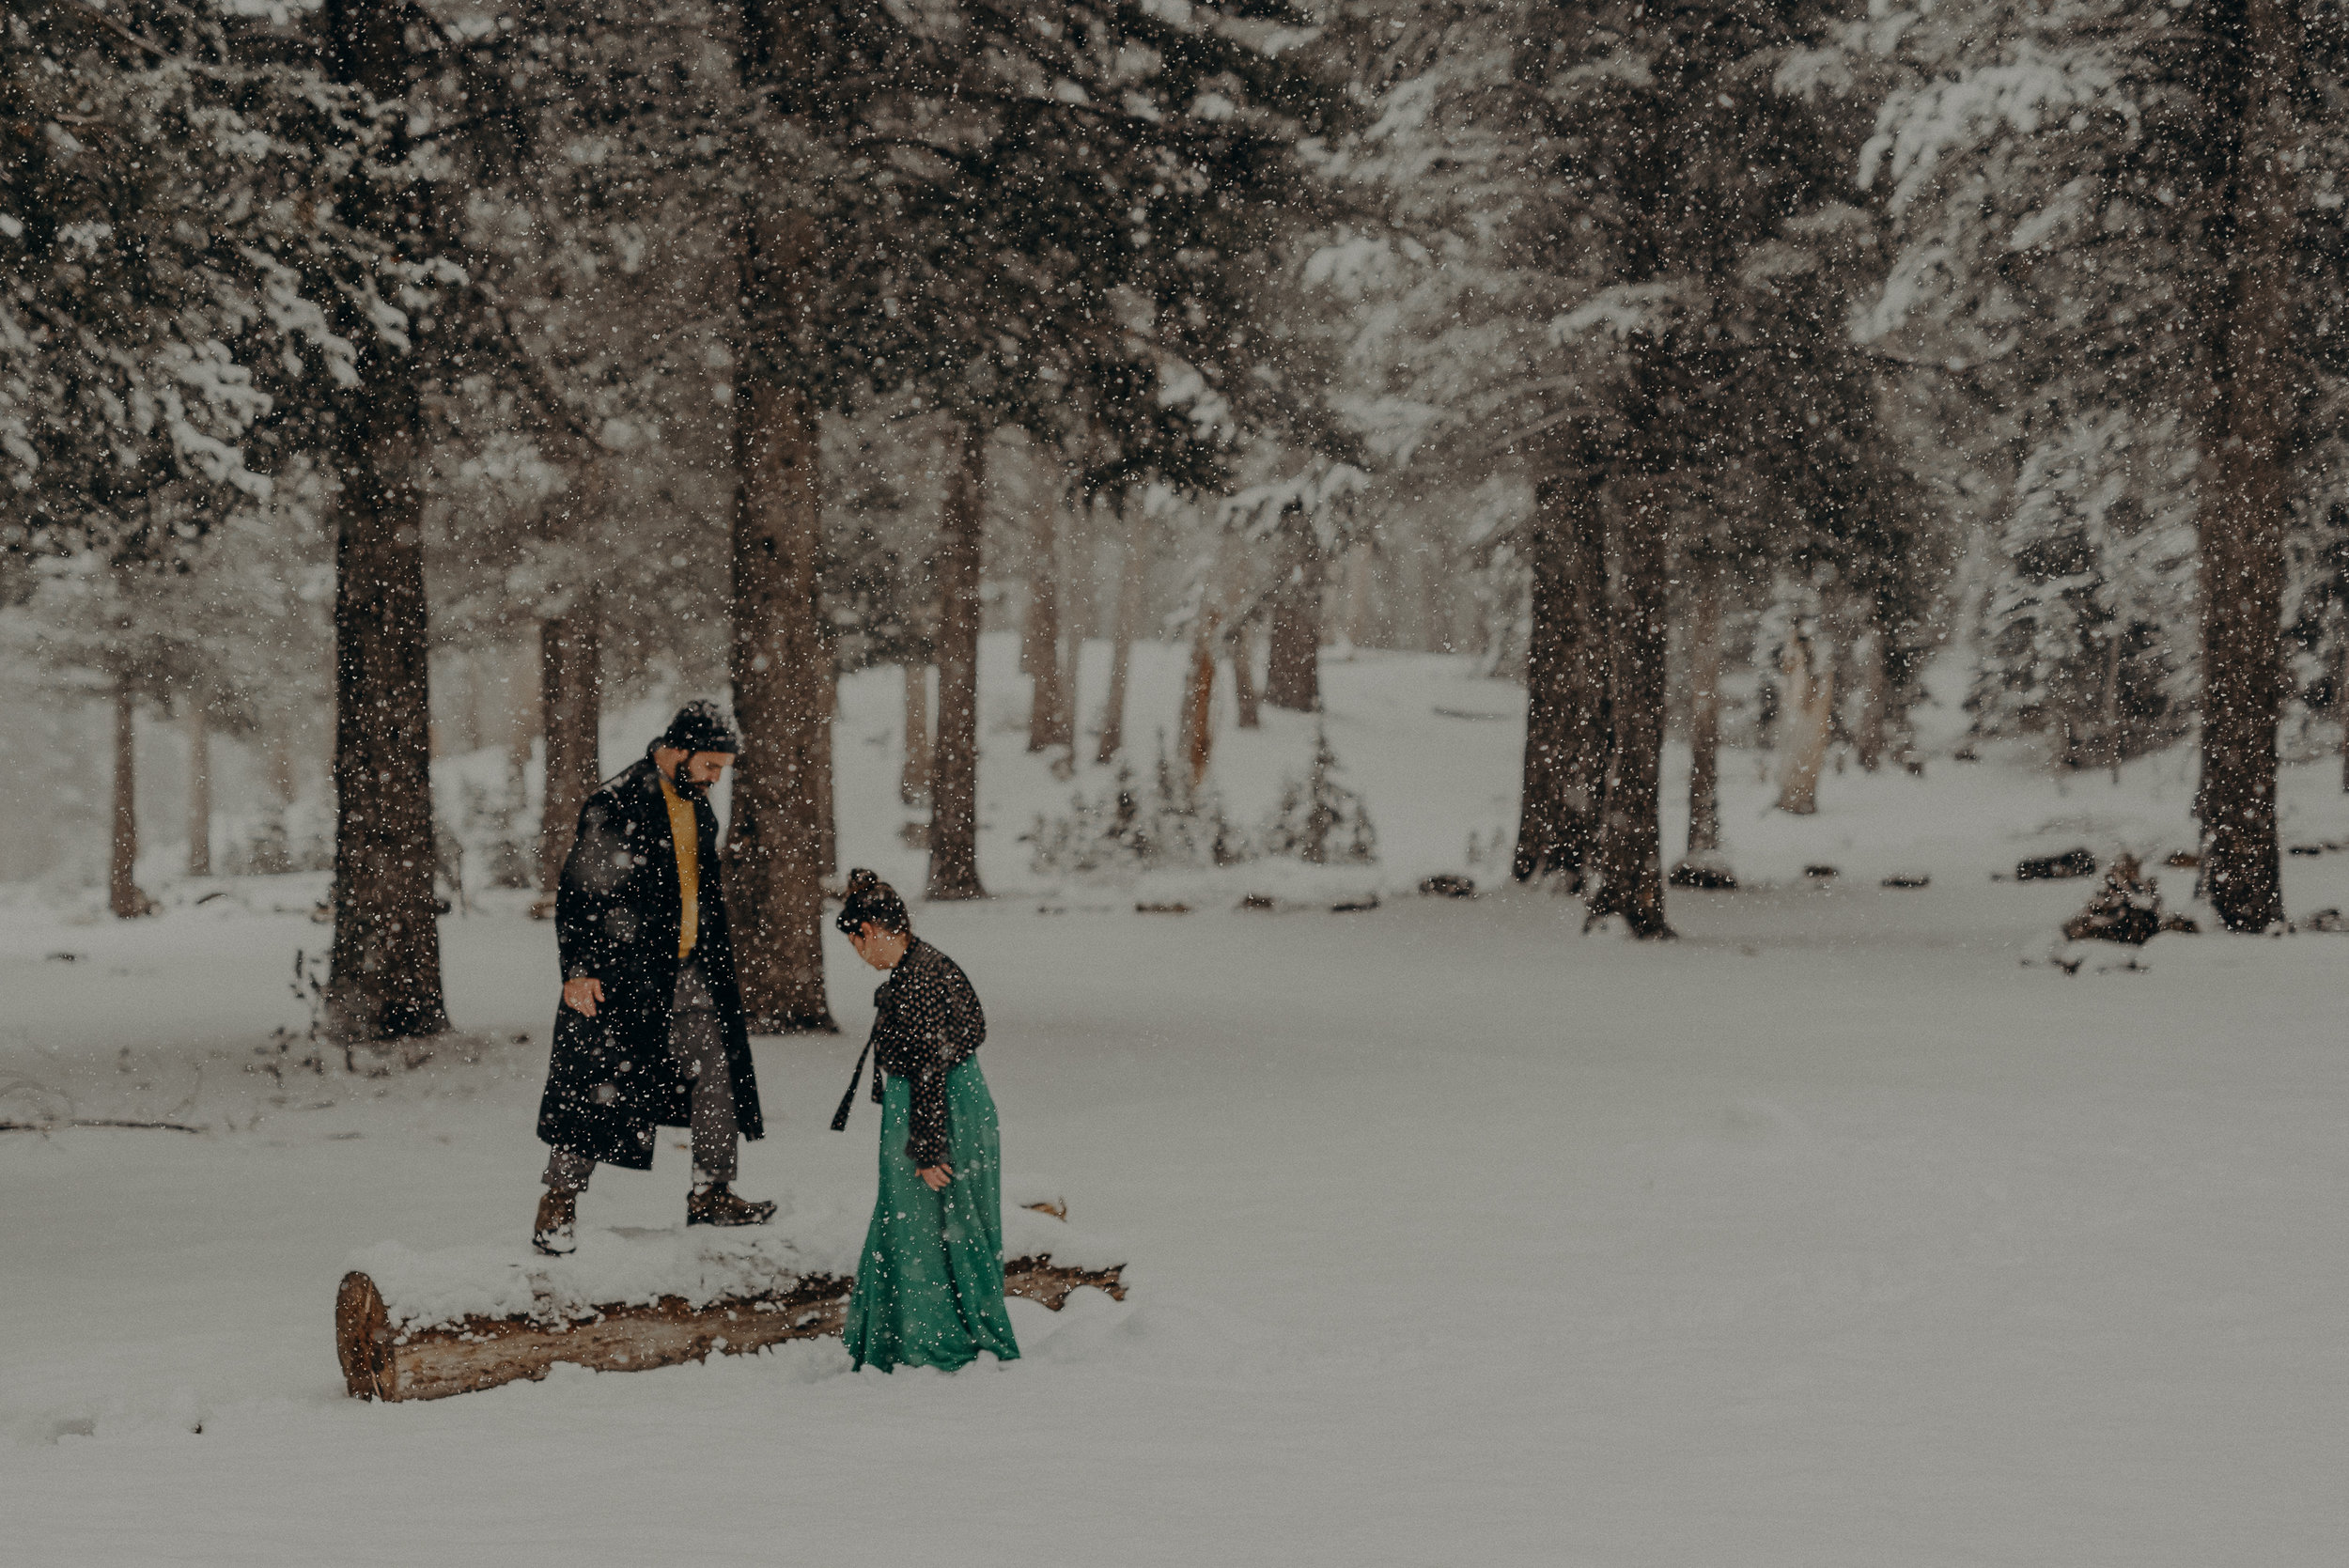 ©Isaiah + Taylor Photography - Los Angeles Wedding Photographer - Snowing engagement session-021.jpg